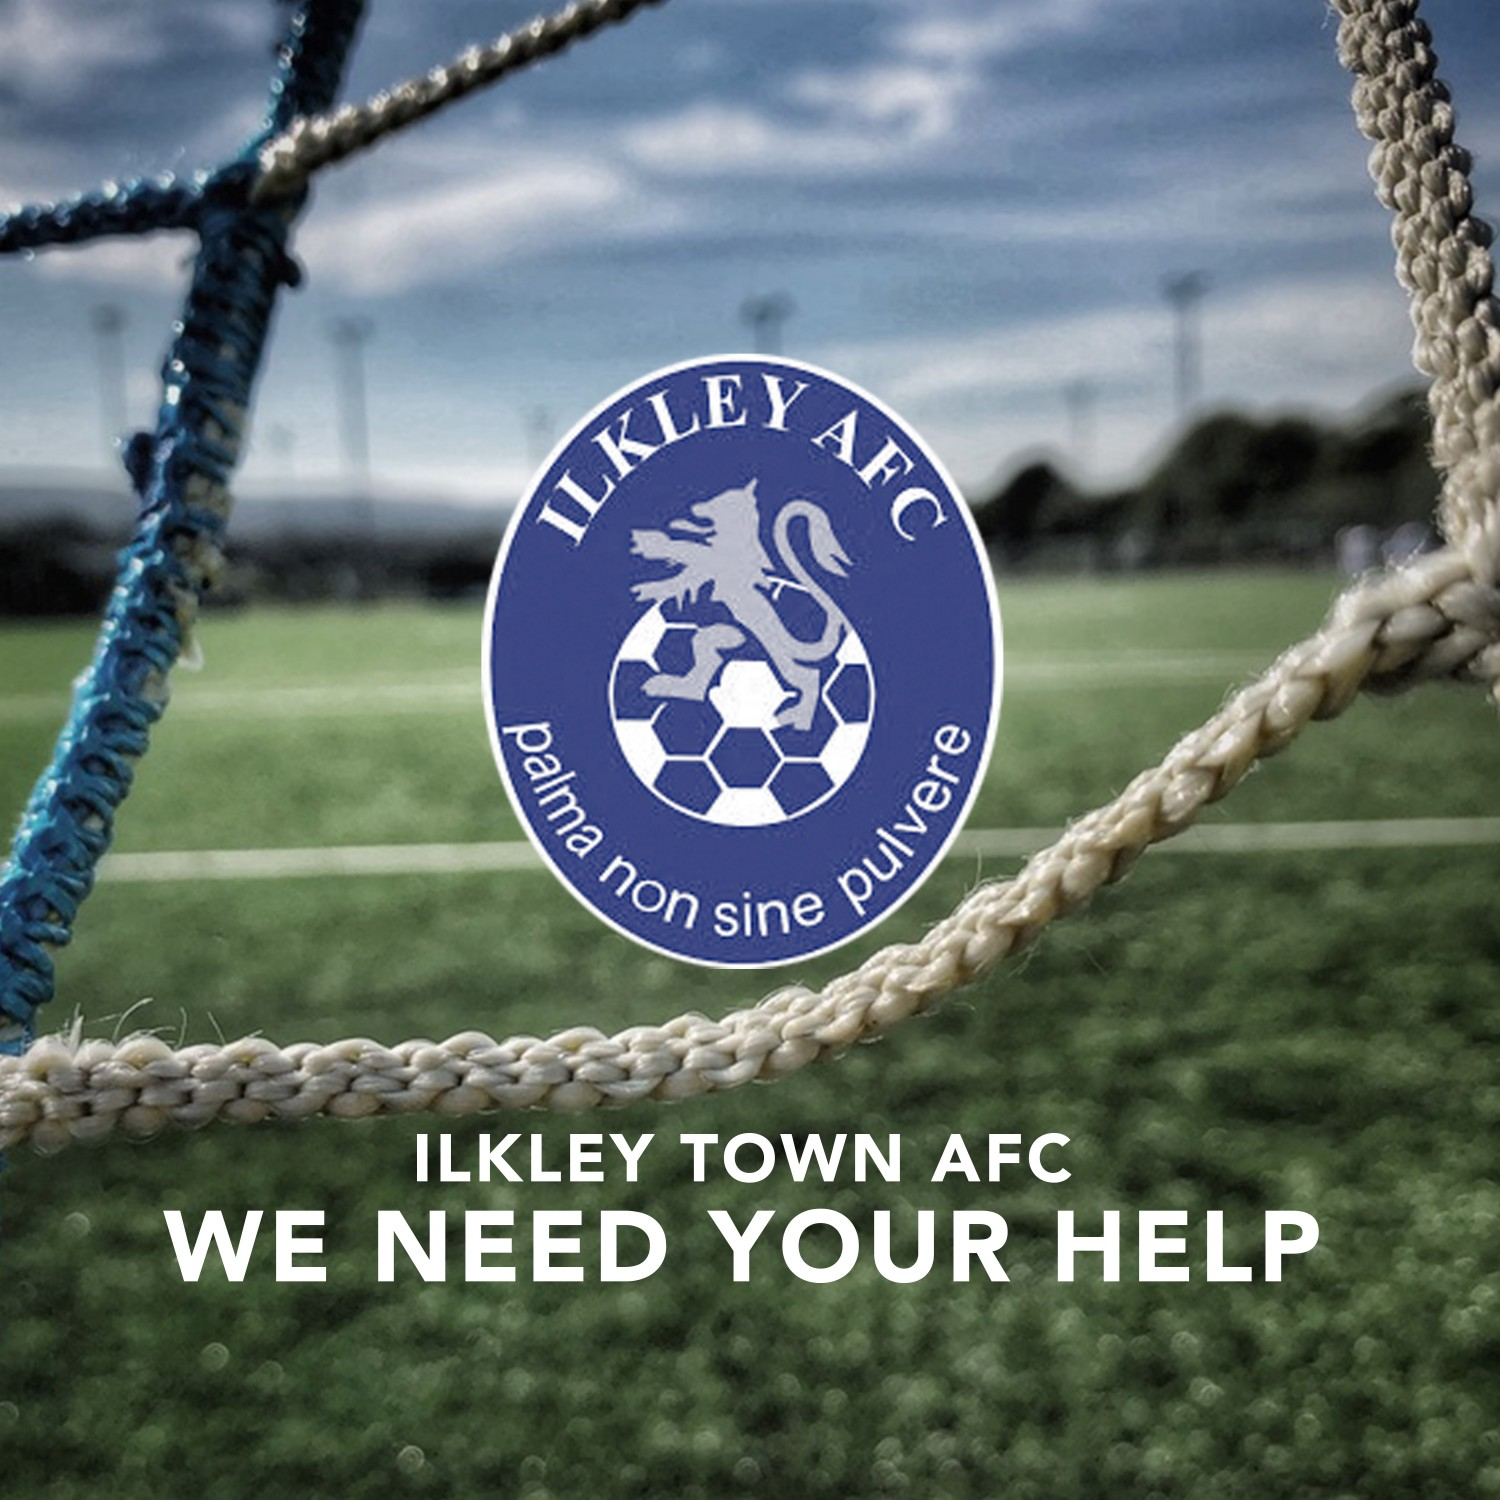 Please help your club...